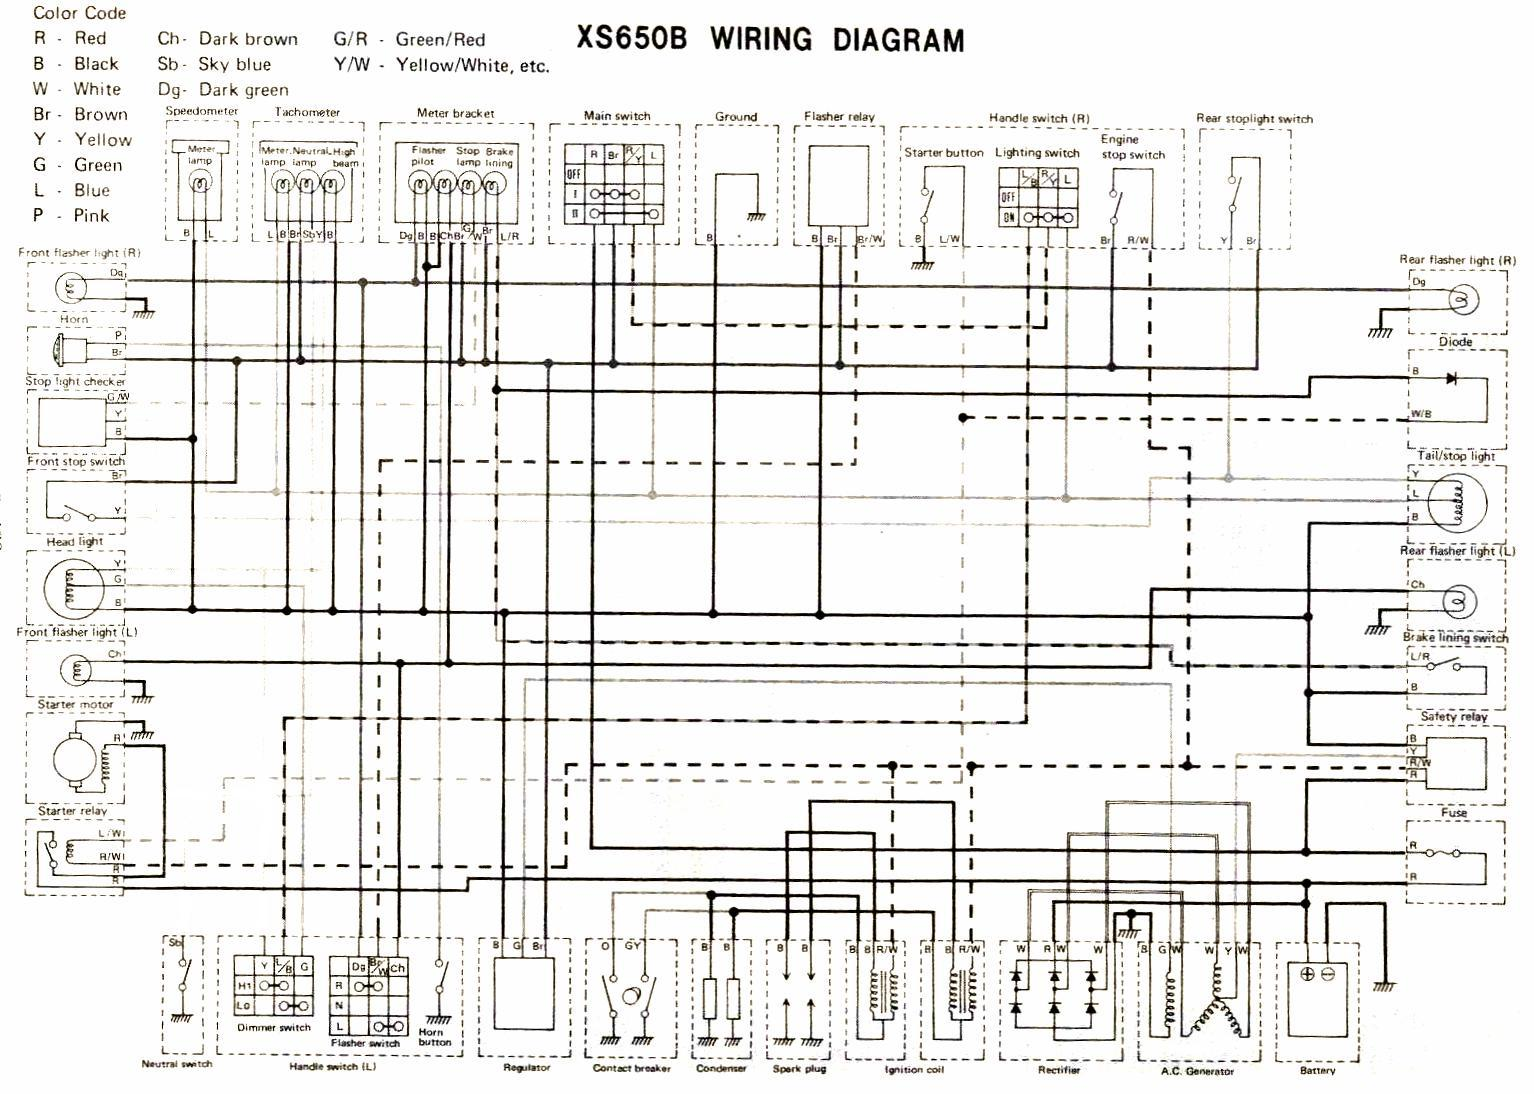 75XS650B wiring diagrams pdf wiring diagram 2005 yamaha r6 at gsmx.co